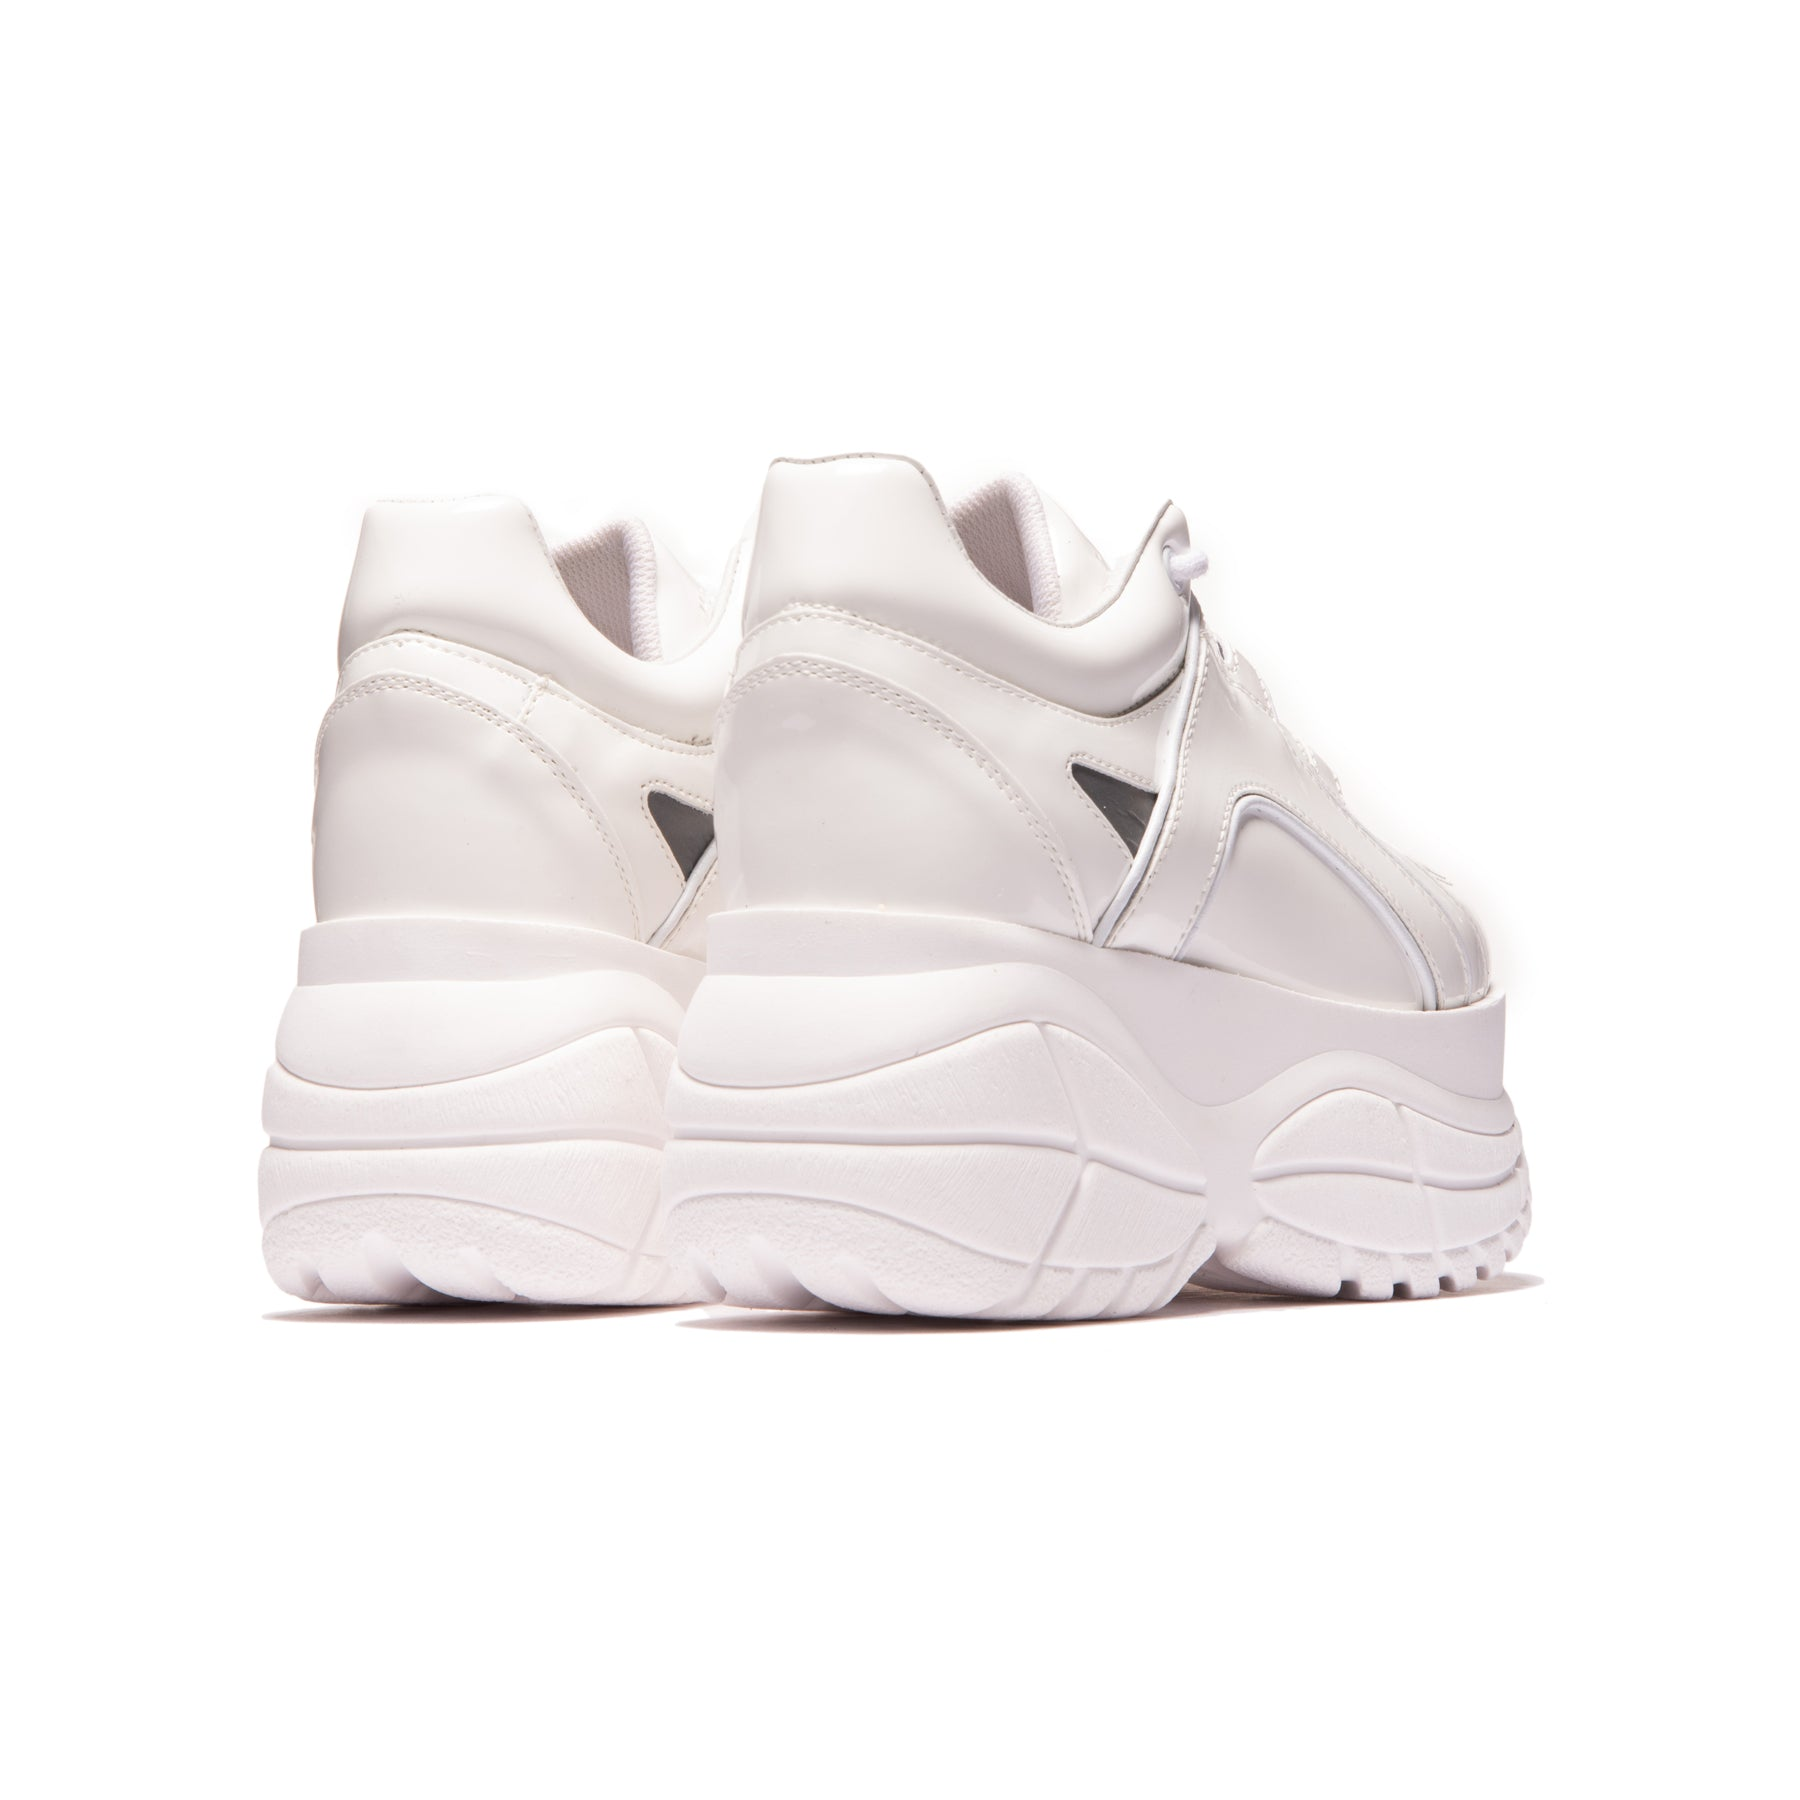 Roadster White Patent